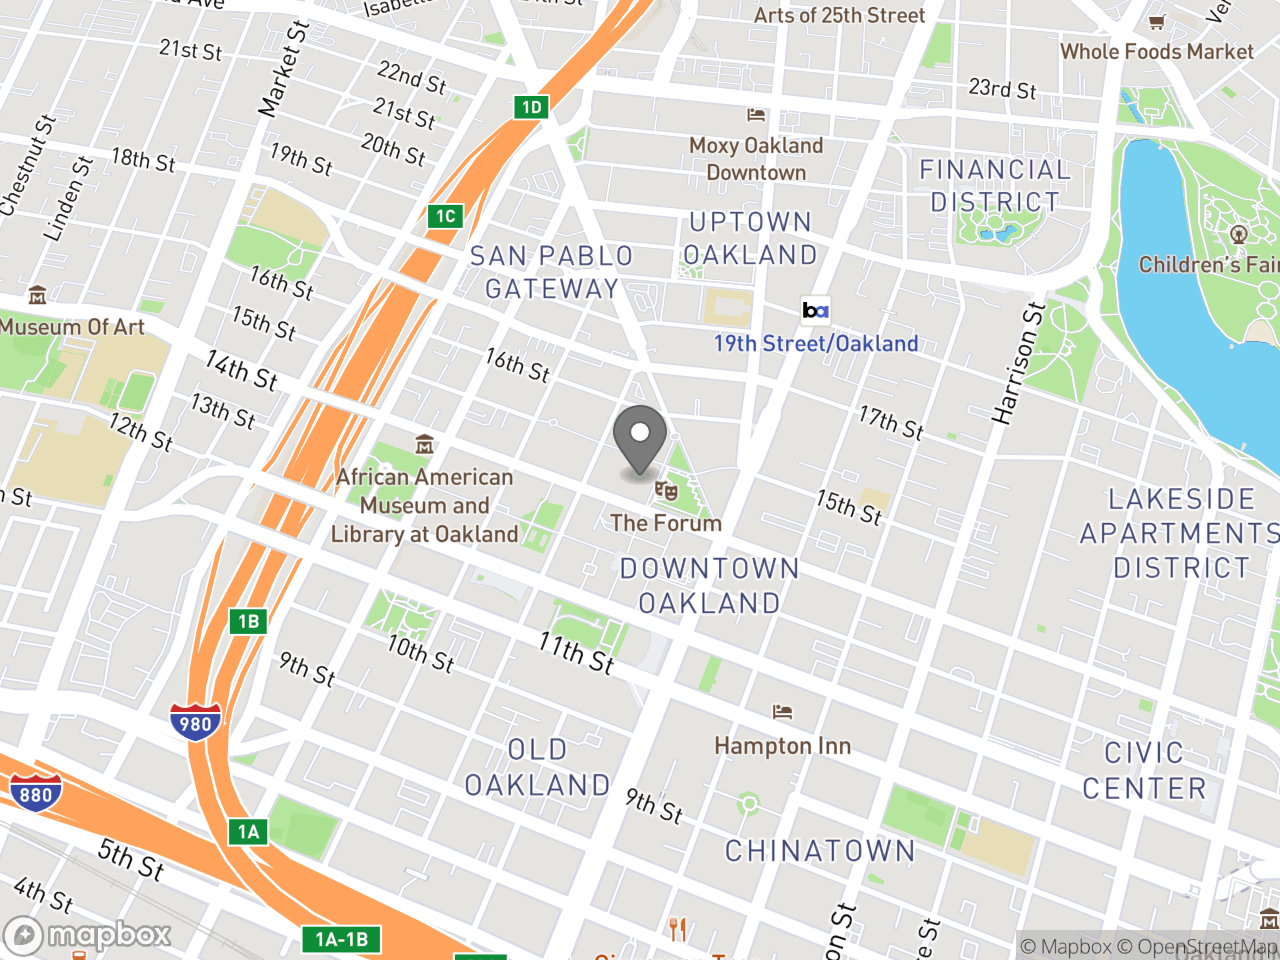 Map image for Oakland Workforce Development Board (OWDB) - Regular Meeting August 6, 2020, located at 1 Frank H. Ogawa Plaza in Oakland, CA 94612